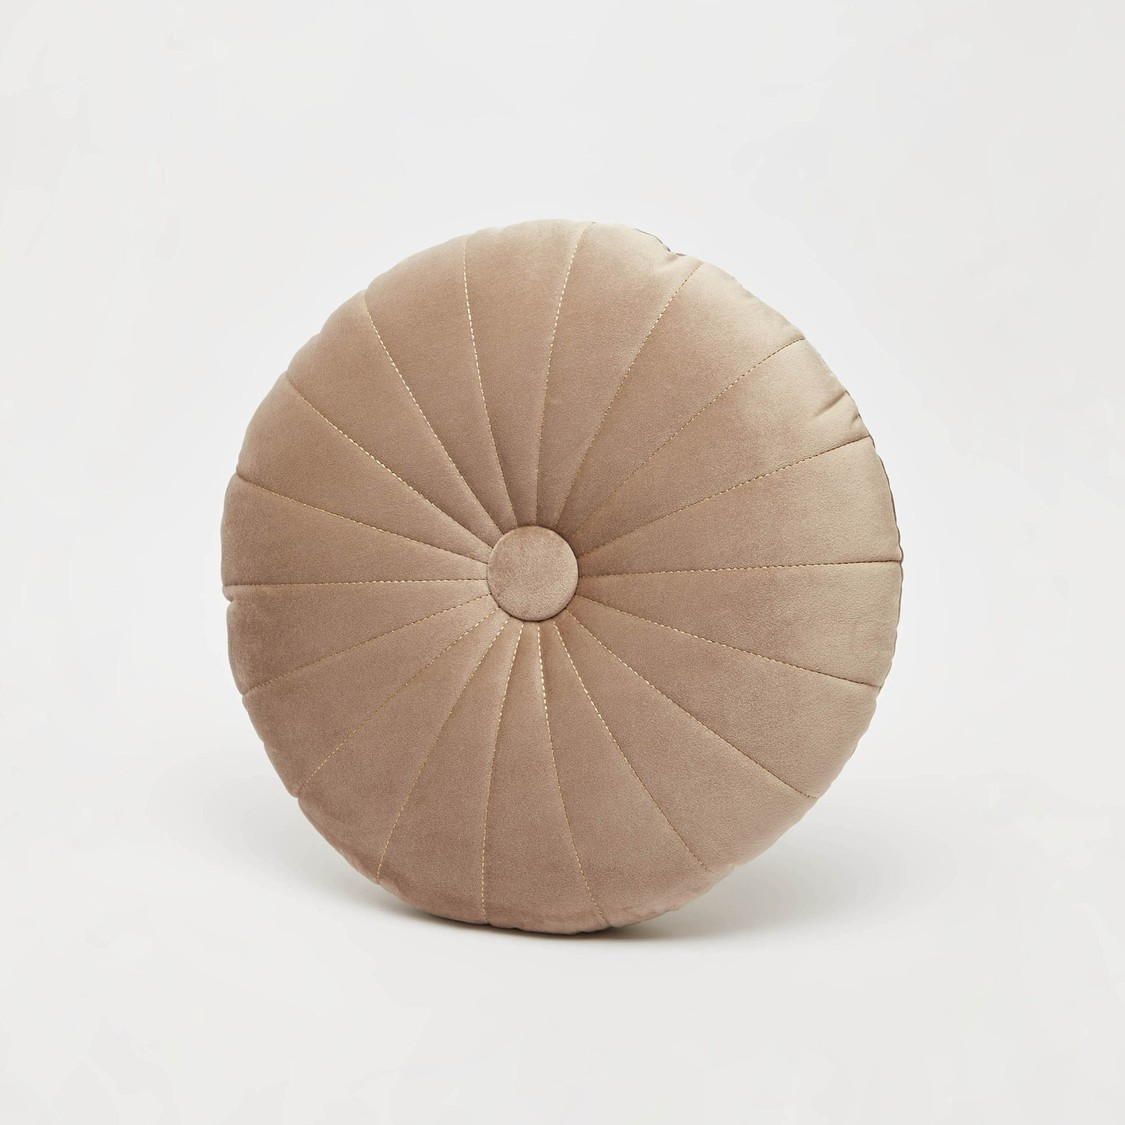 Textured Round Filled Cushion - 45 cms